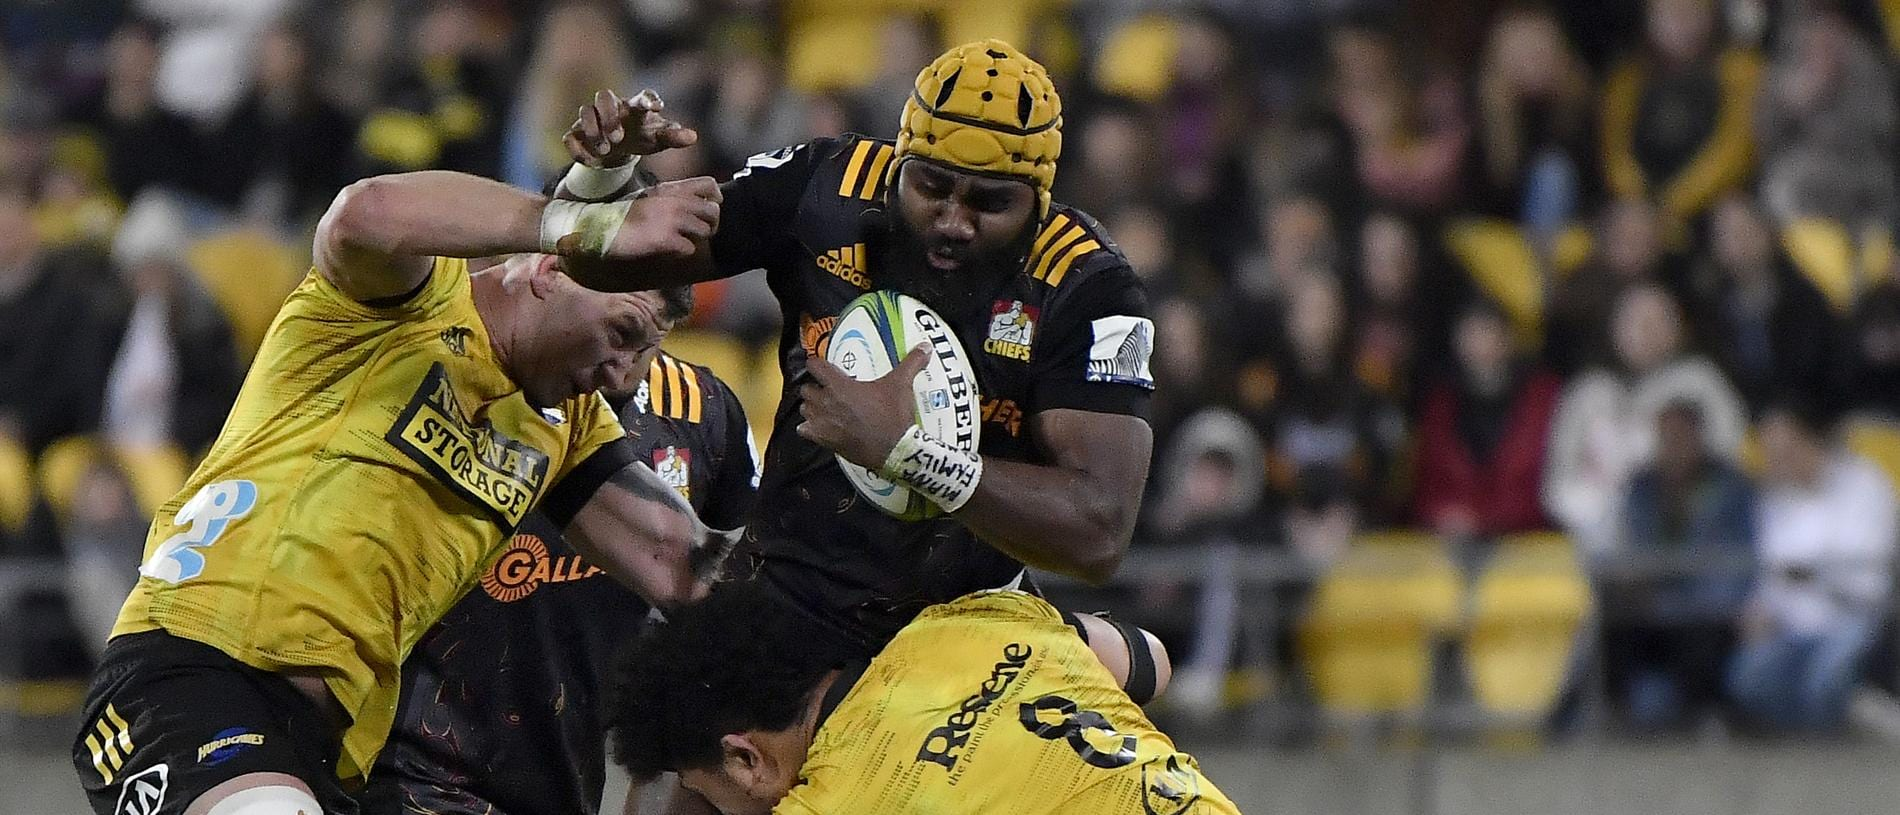 Super Rugby Aotearoa Rd 9 - Hurricanes v Chiefs